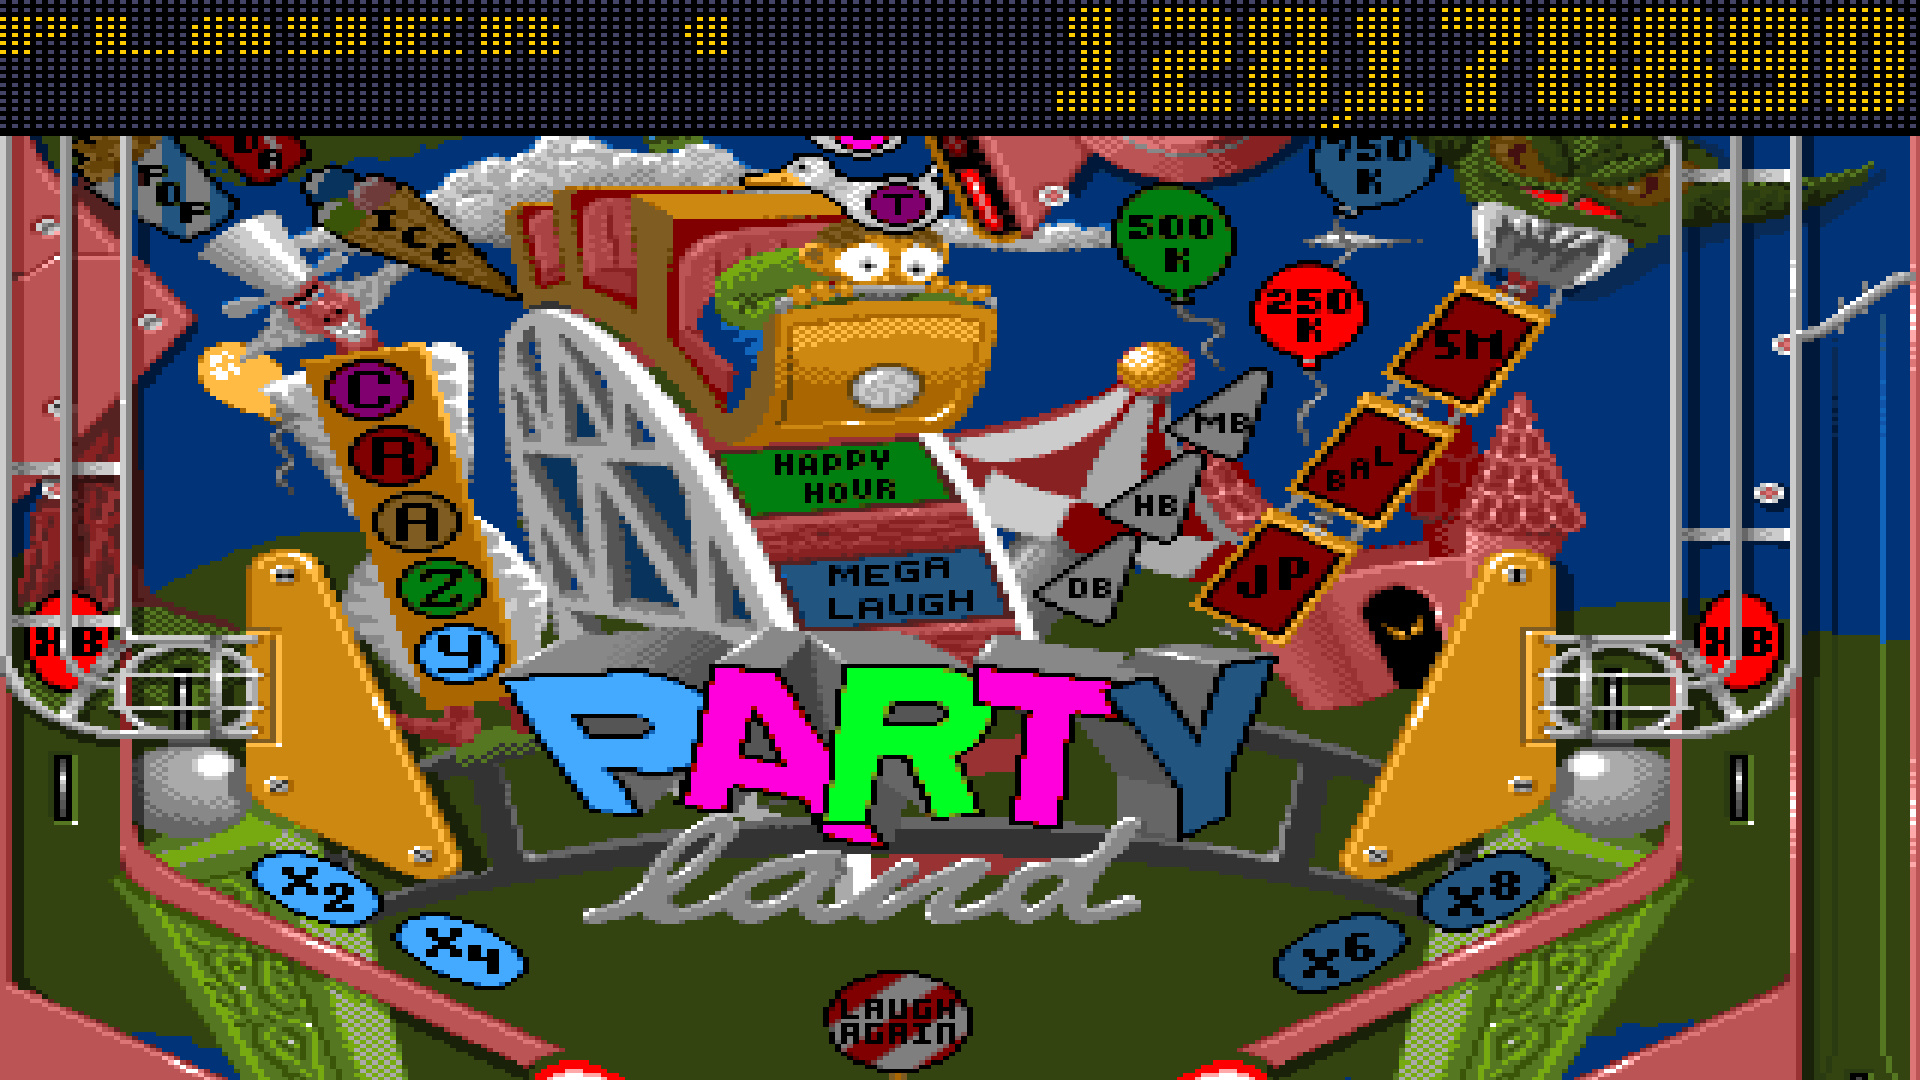 TheTrickster: Pinball Fantasies: Party Land (Amiga Emulated) 128,178,890 points on 2015-07-12 01:43:04